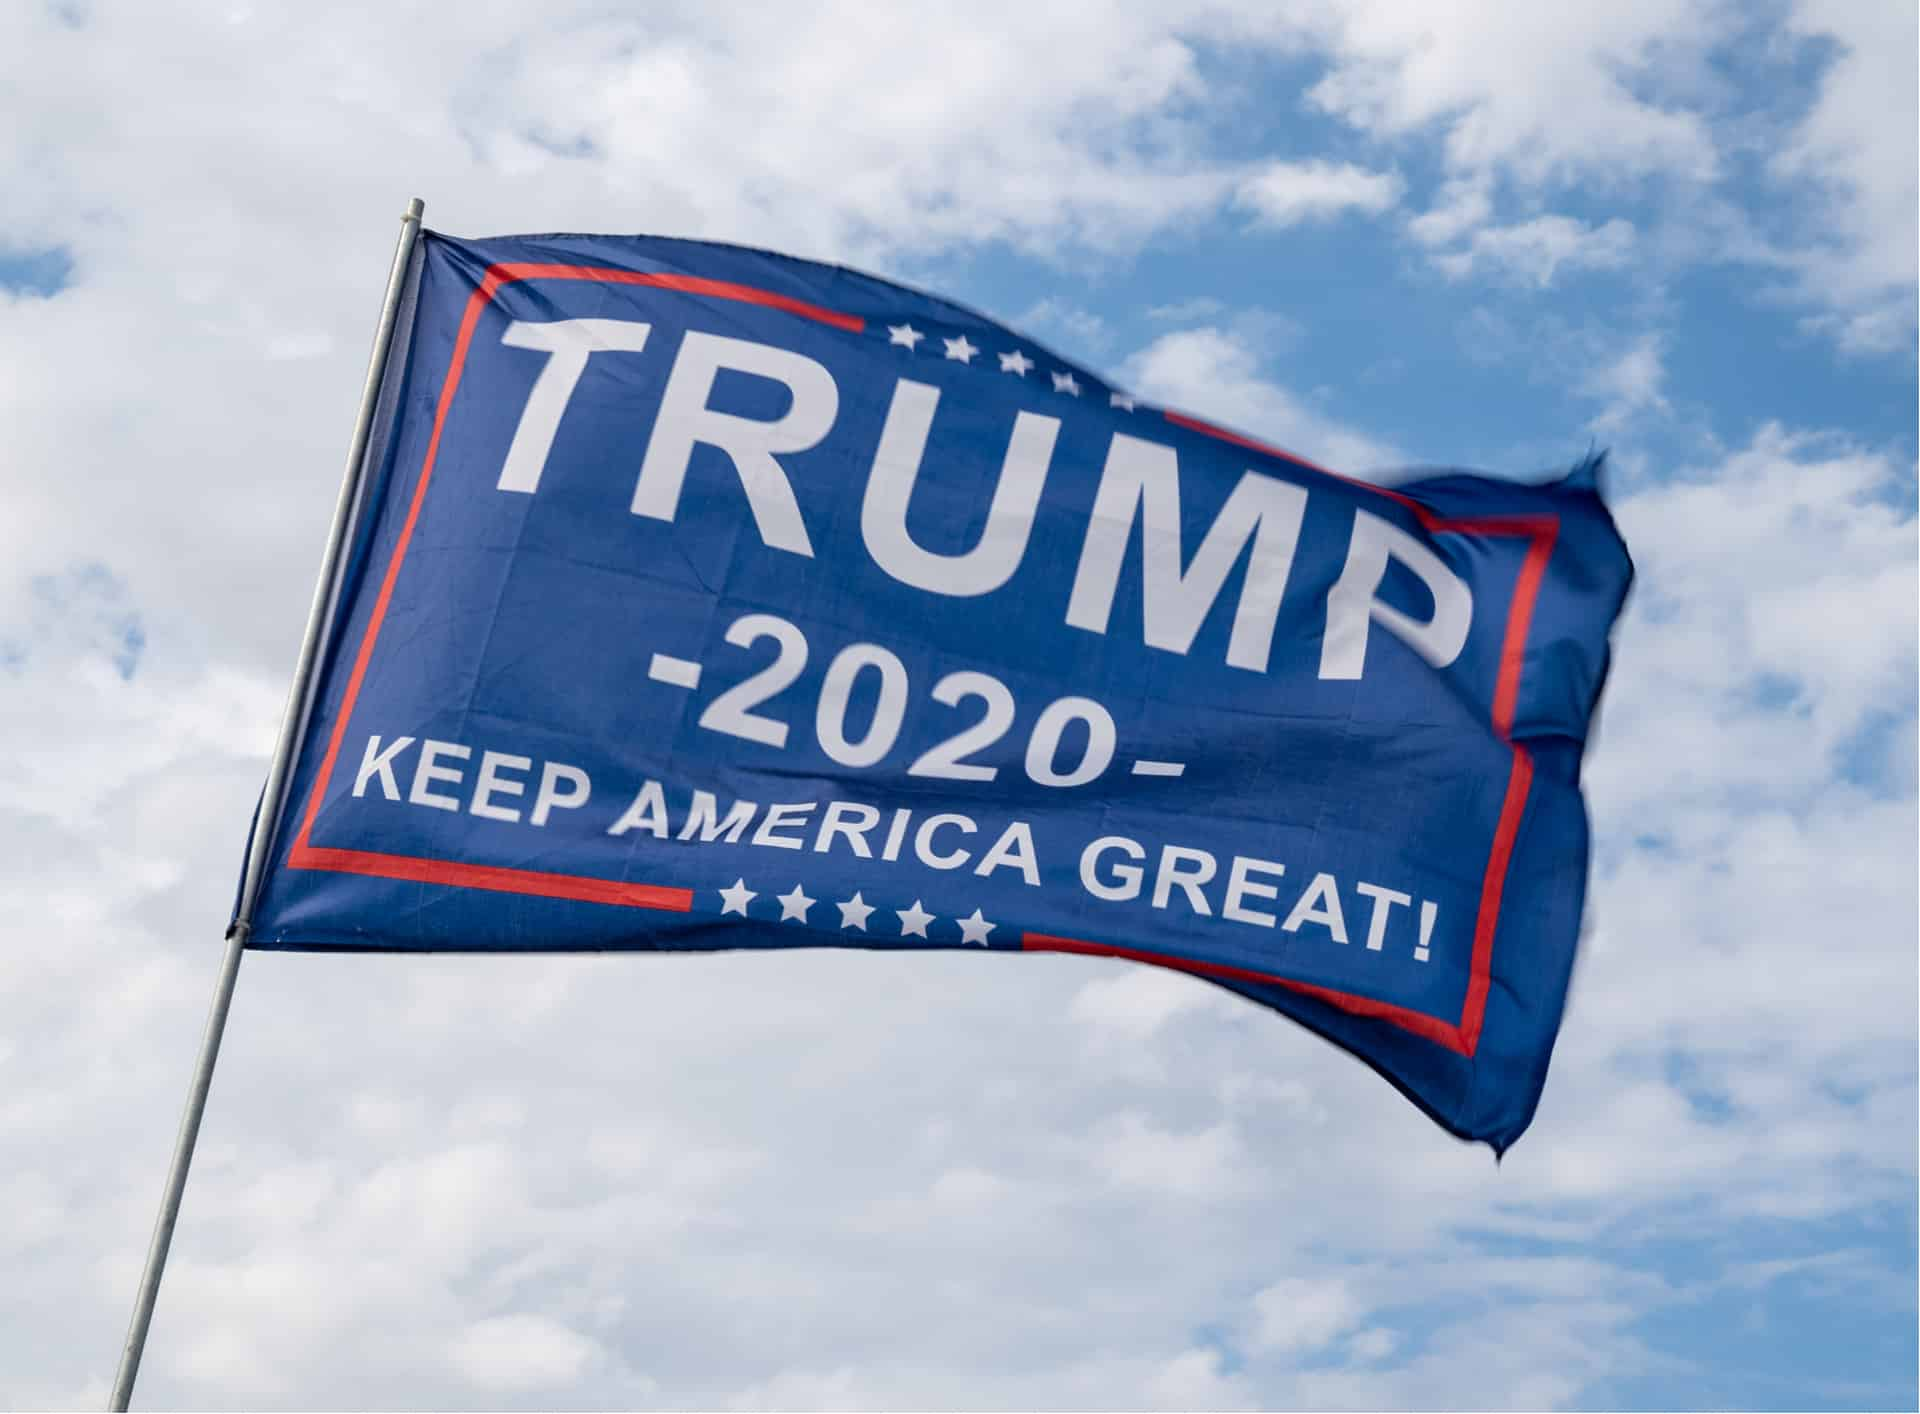 The Trump Flag